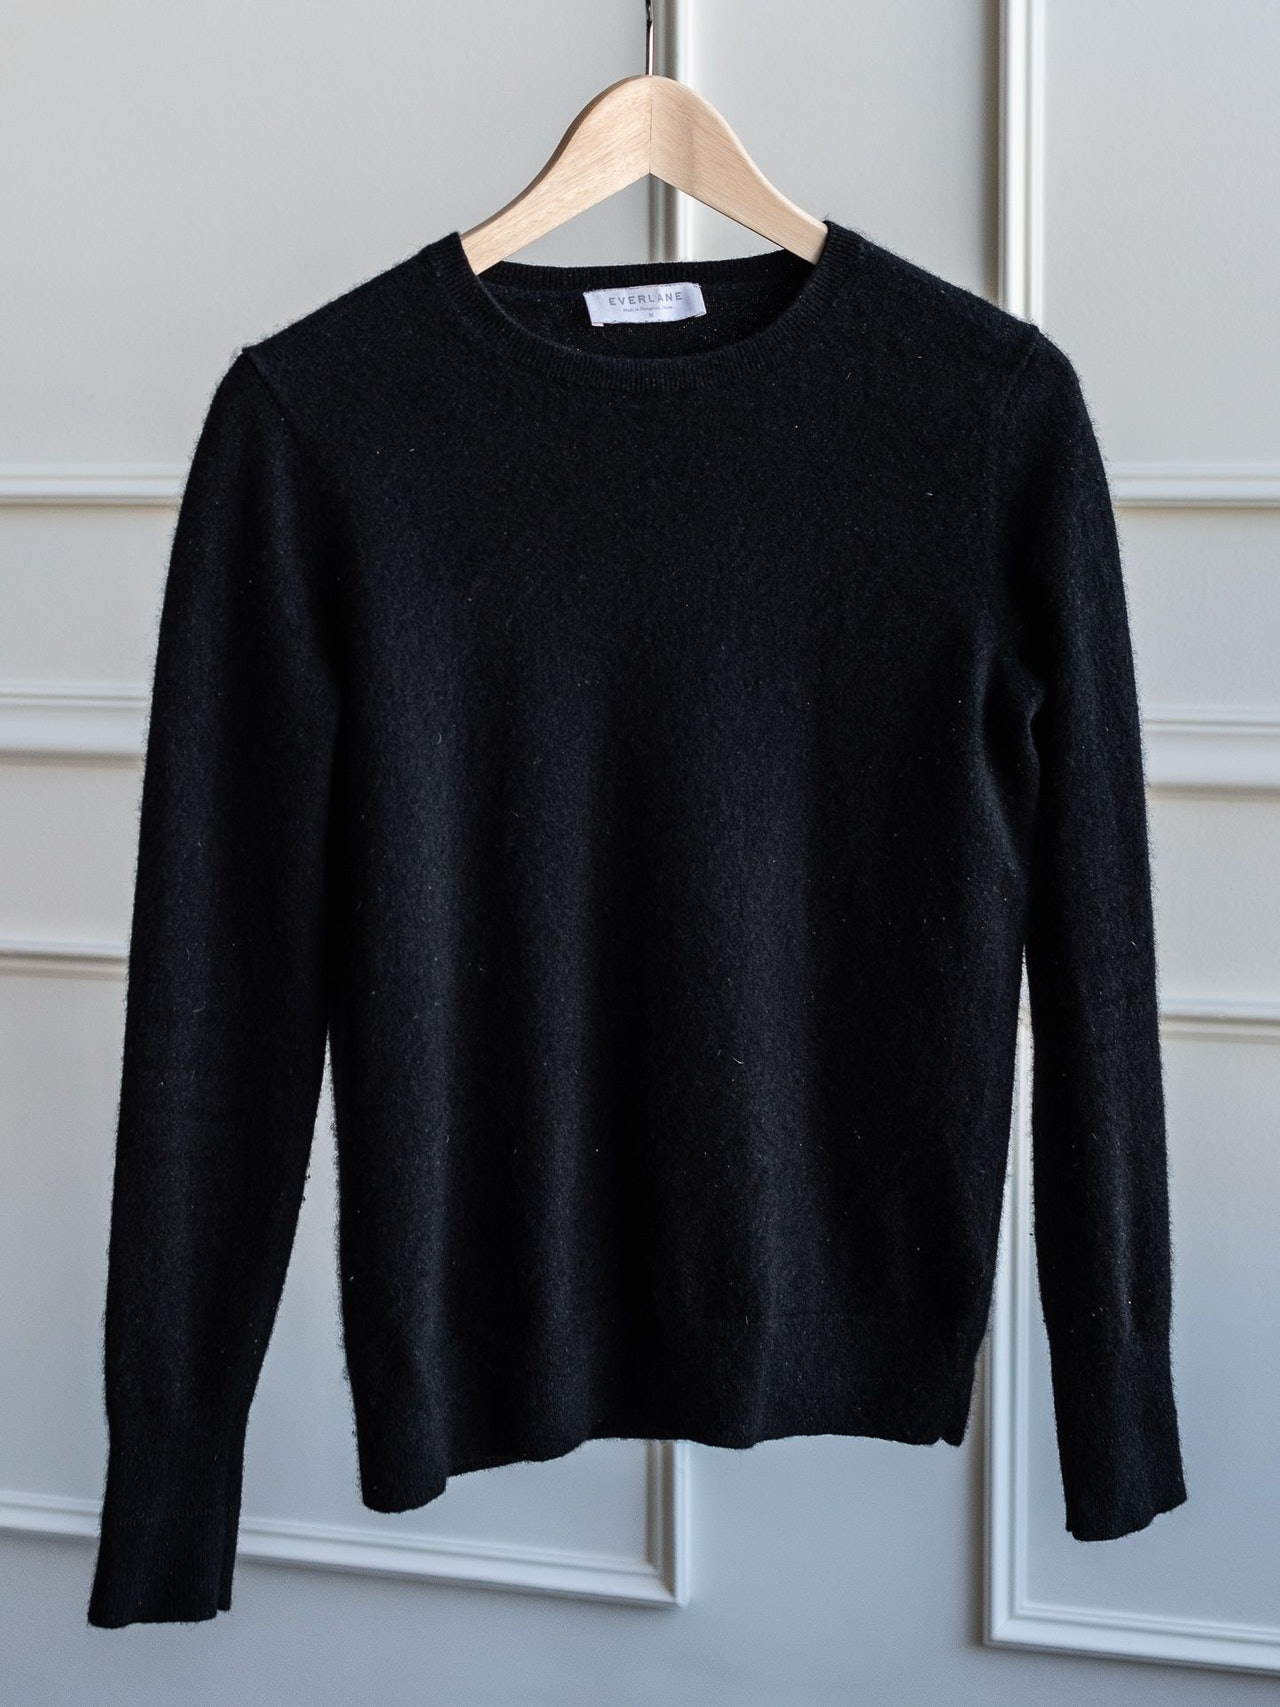 Everlane Cashmere Crew Black by Conscious by Chloé